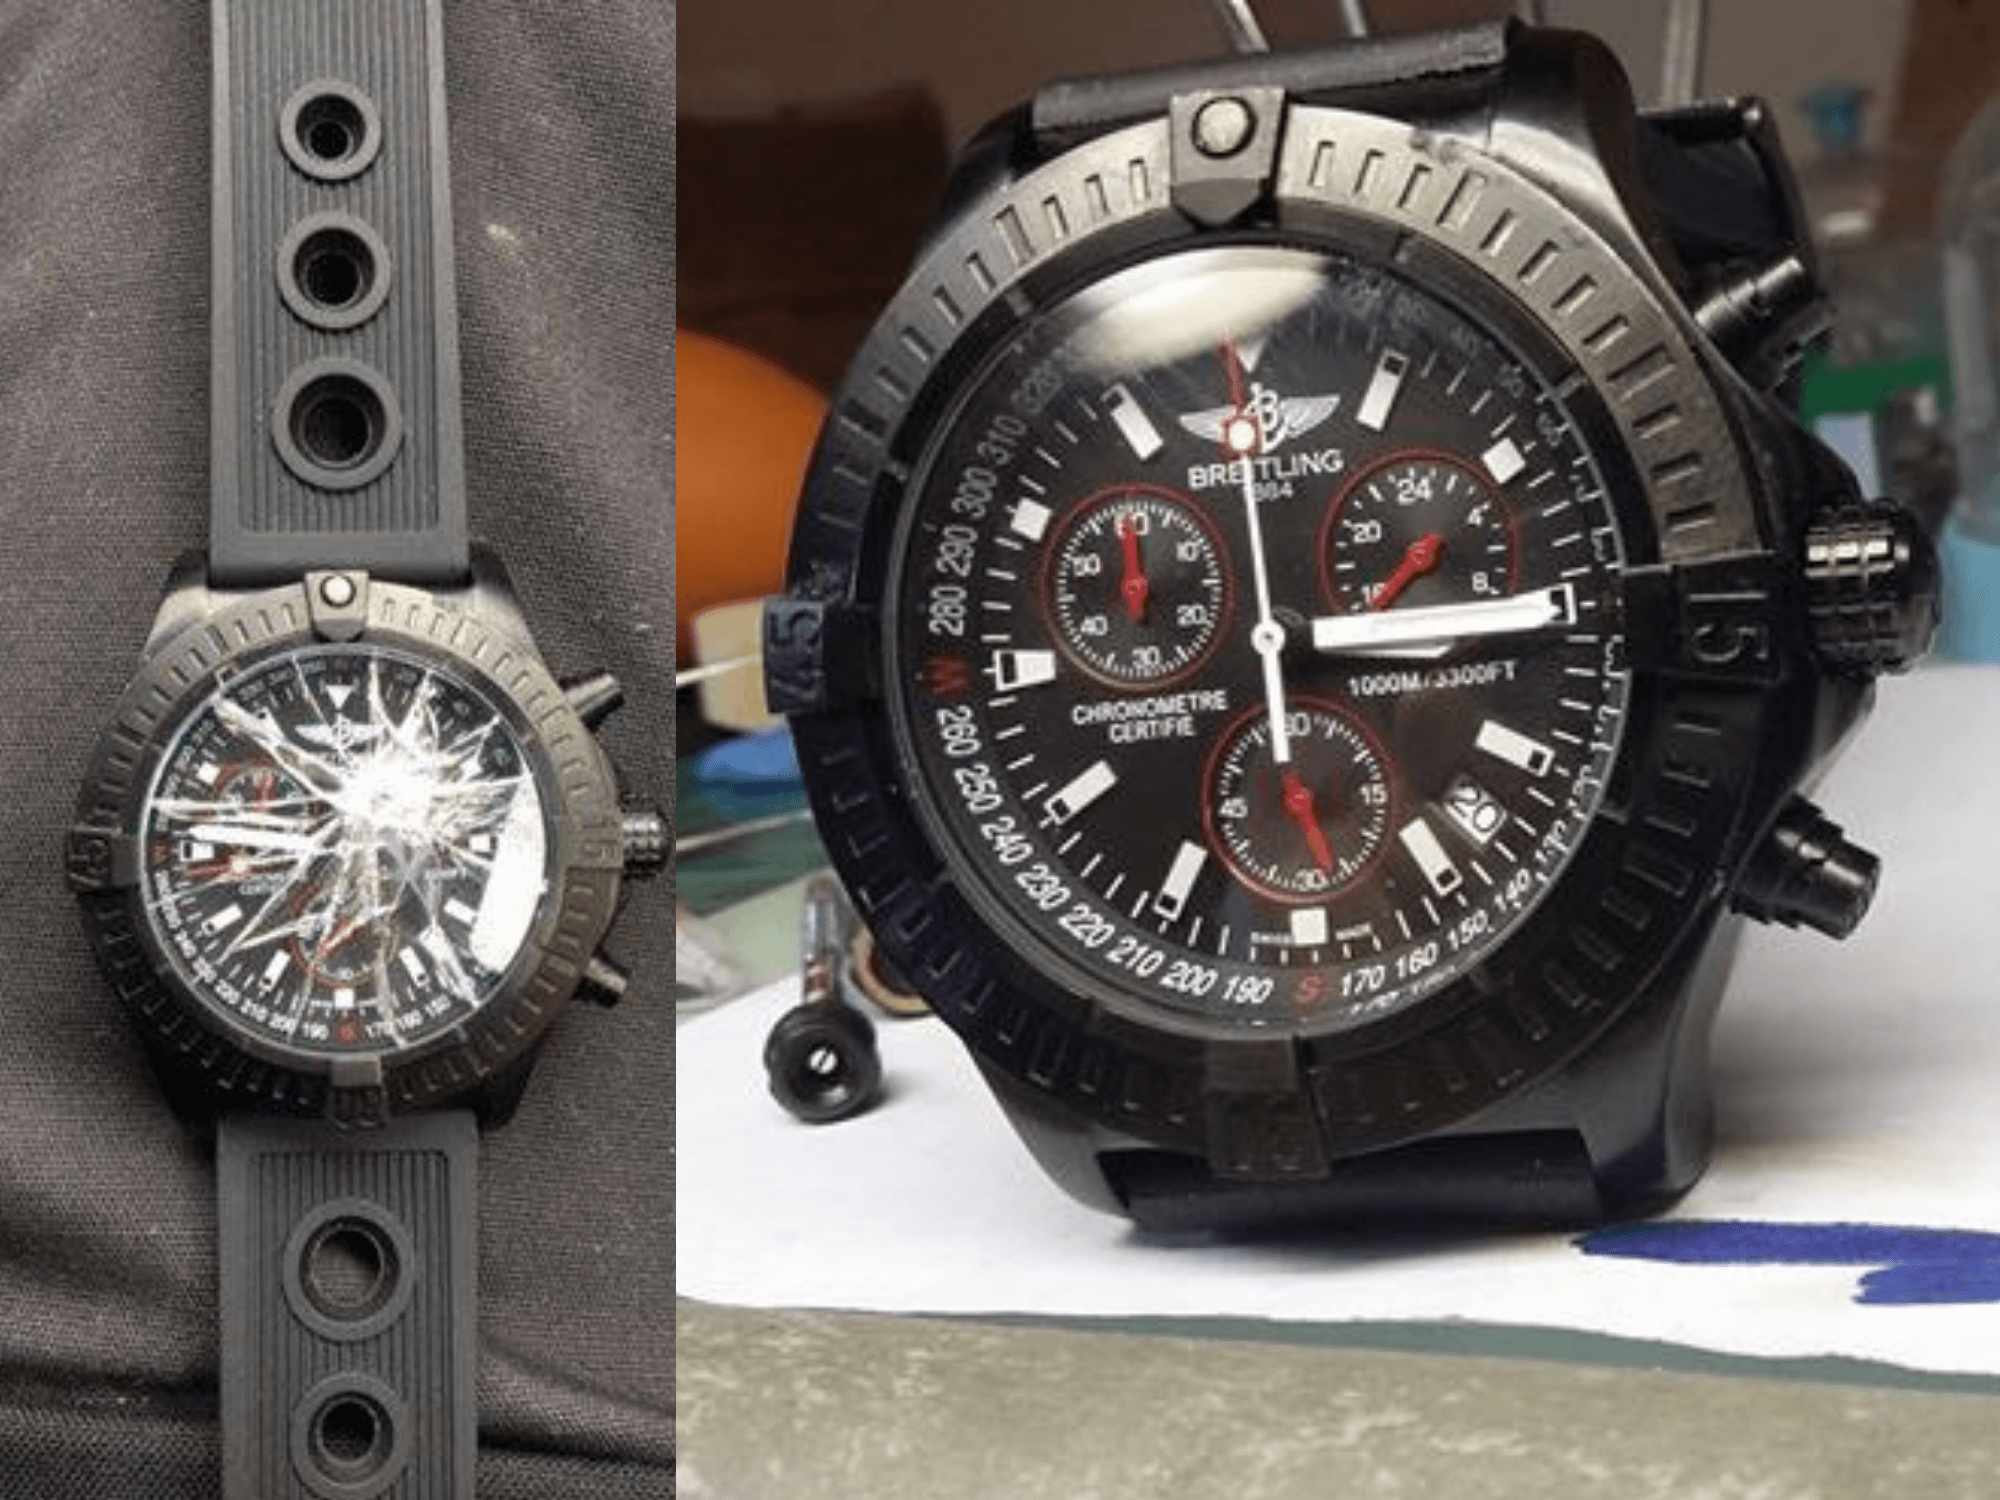 Comparison image of a smashed watch face and a repaired face